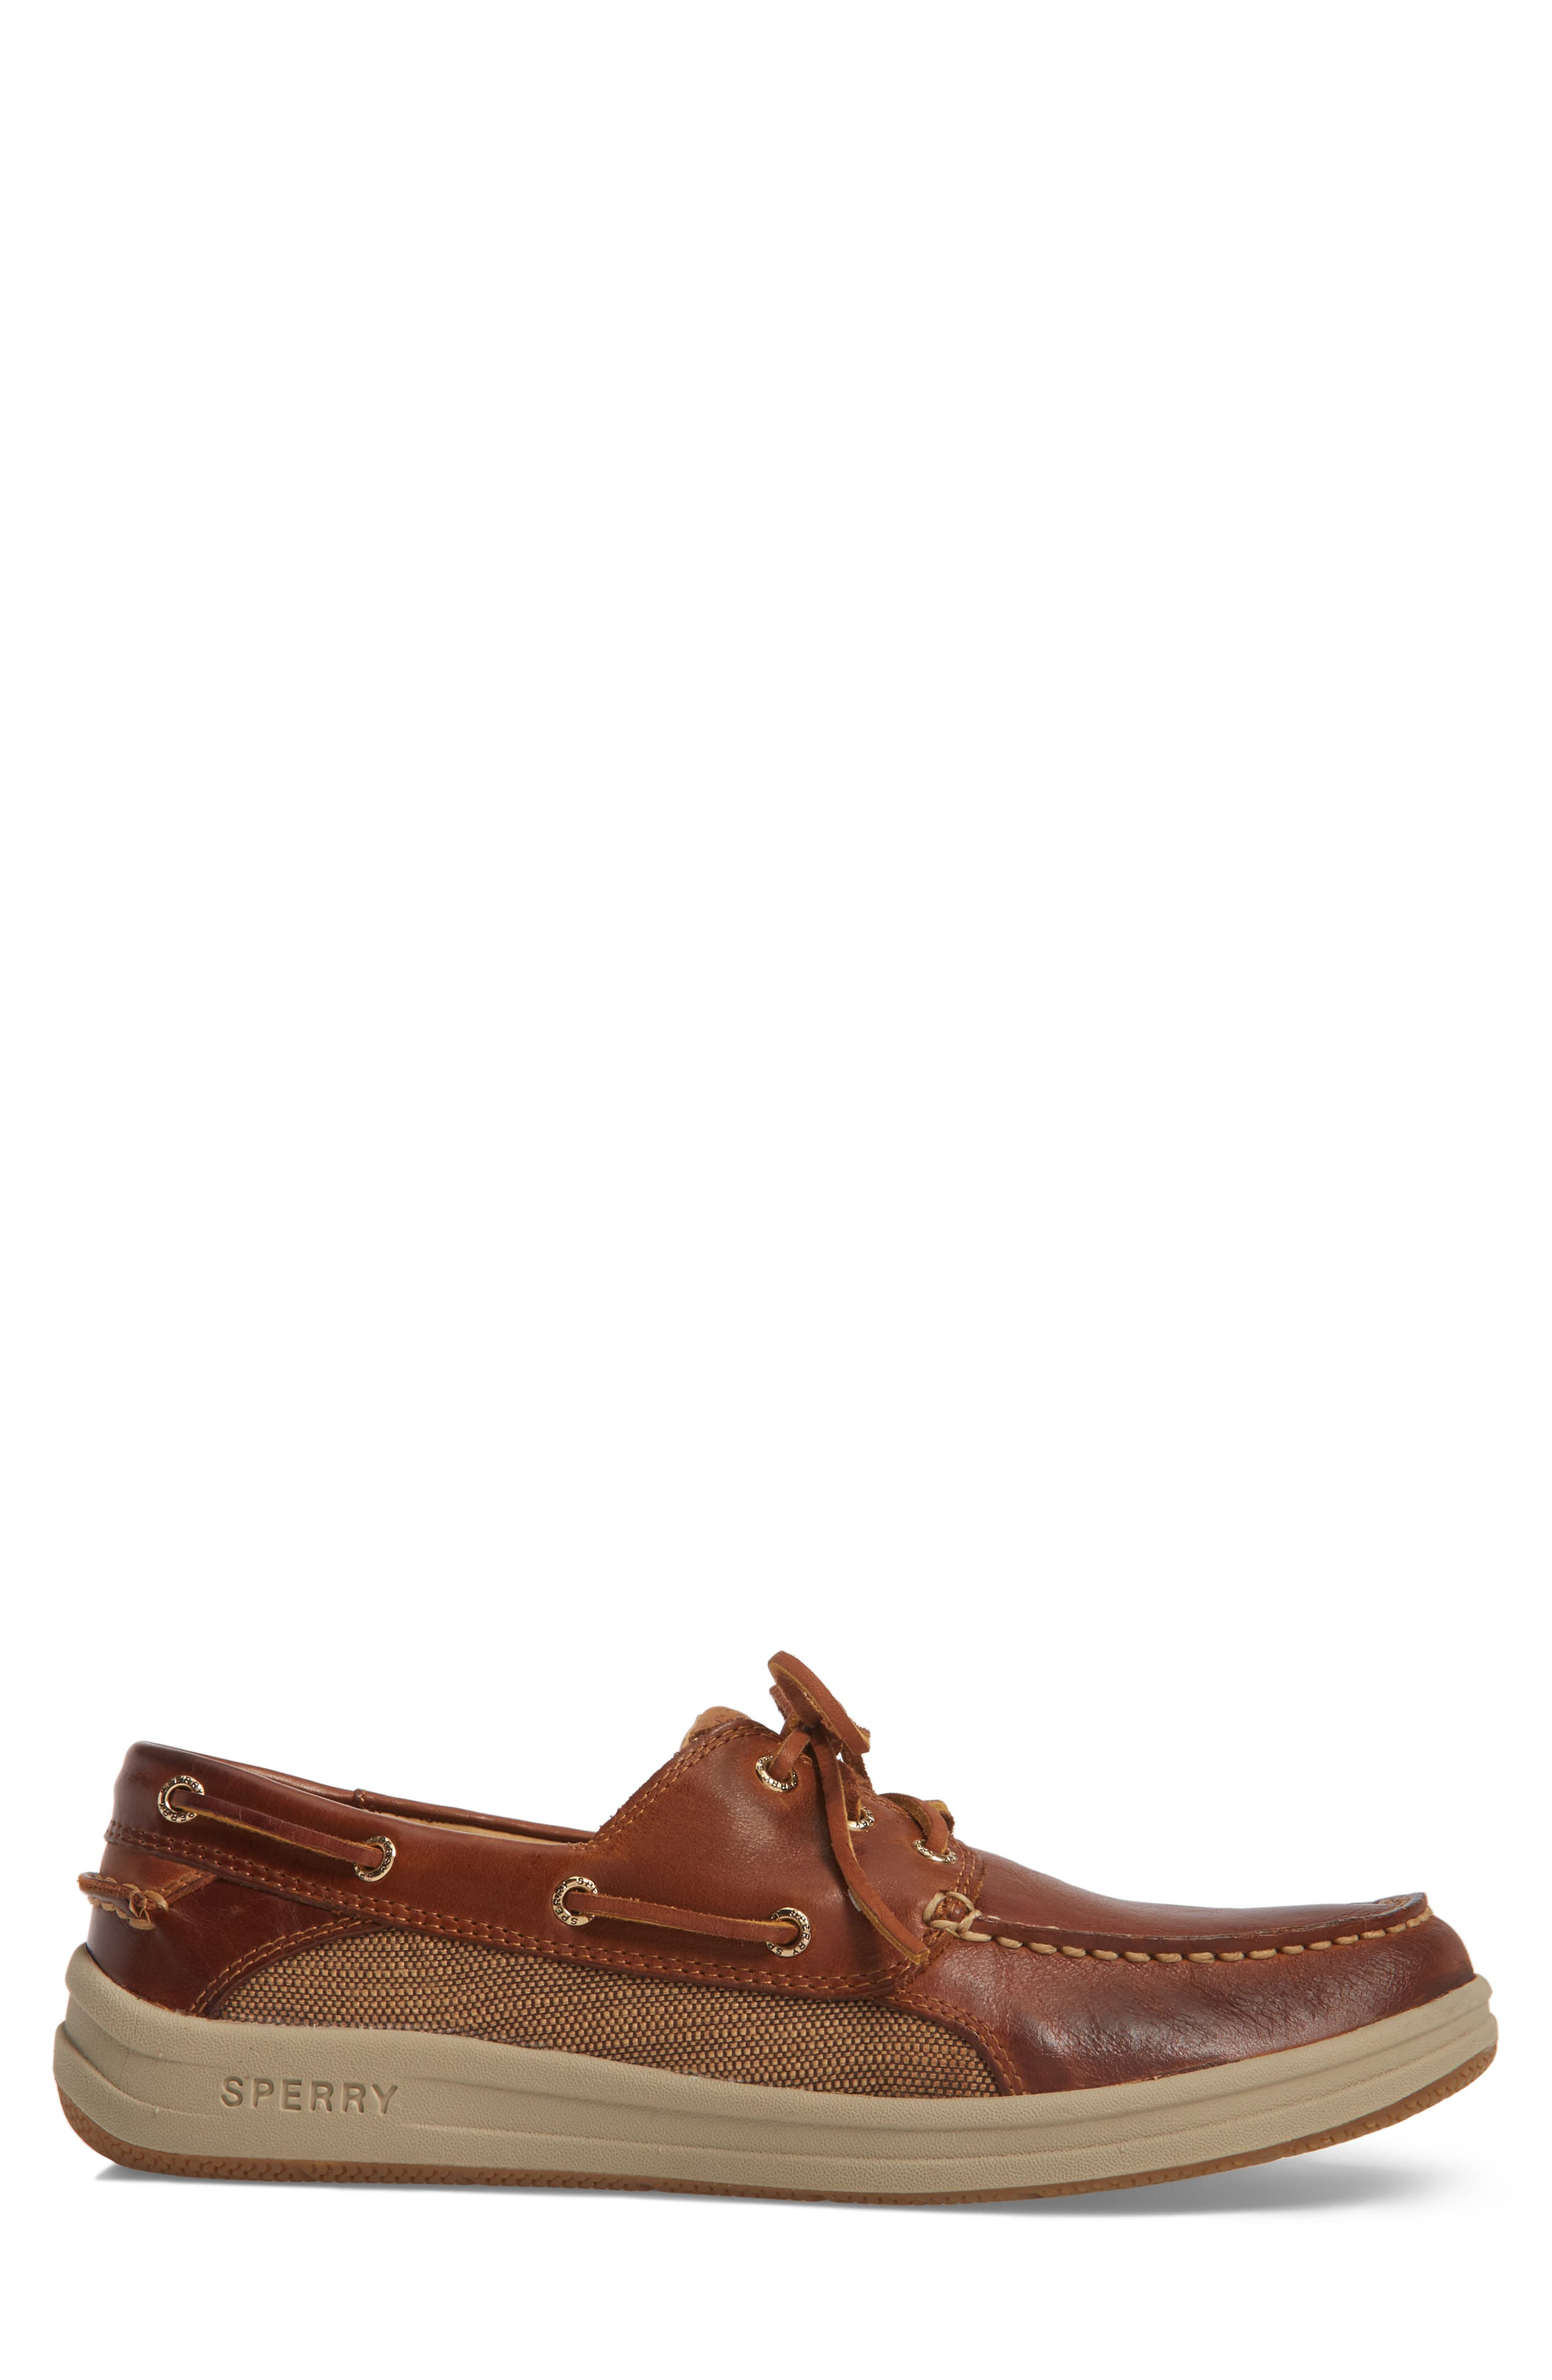 Gold Cup Gamefish Boat Shoe,                             Alternate thumbnail 3, color,                             BROWN LEATHER